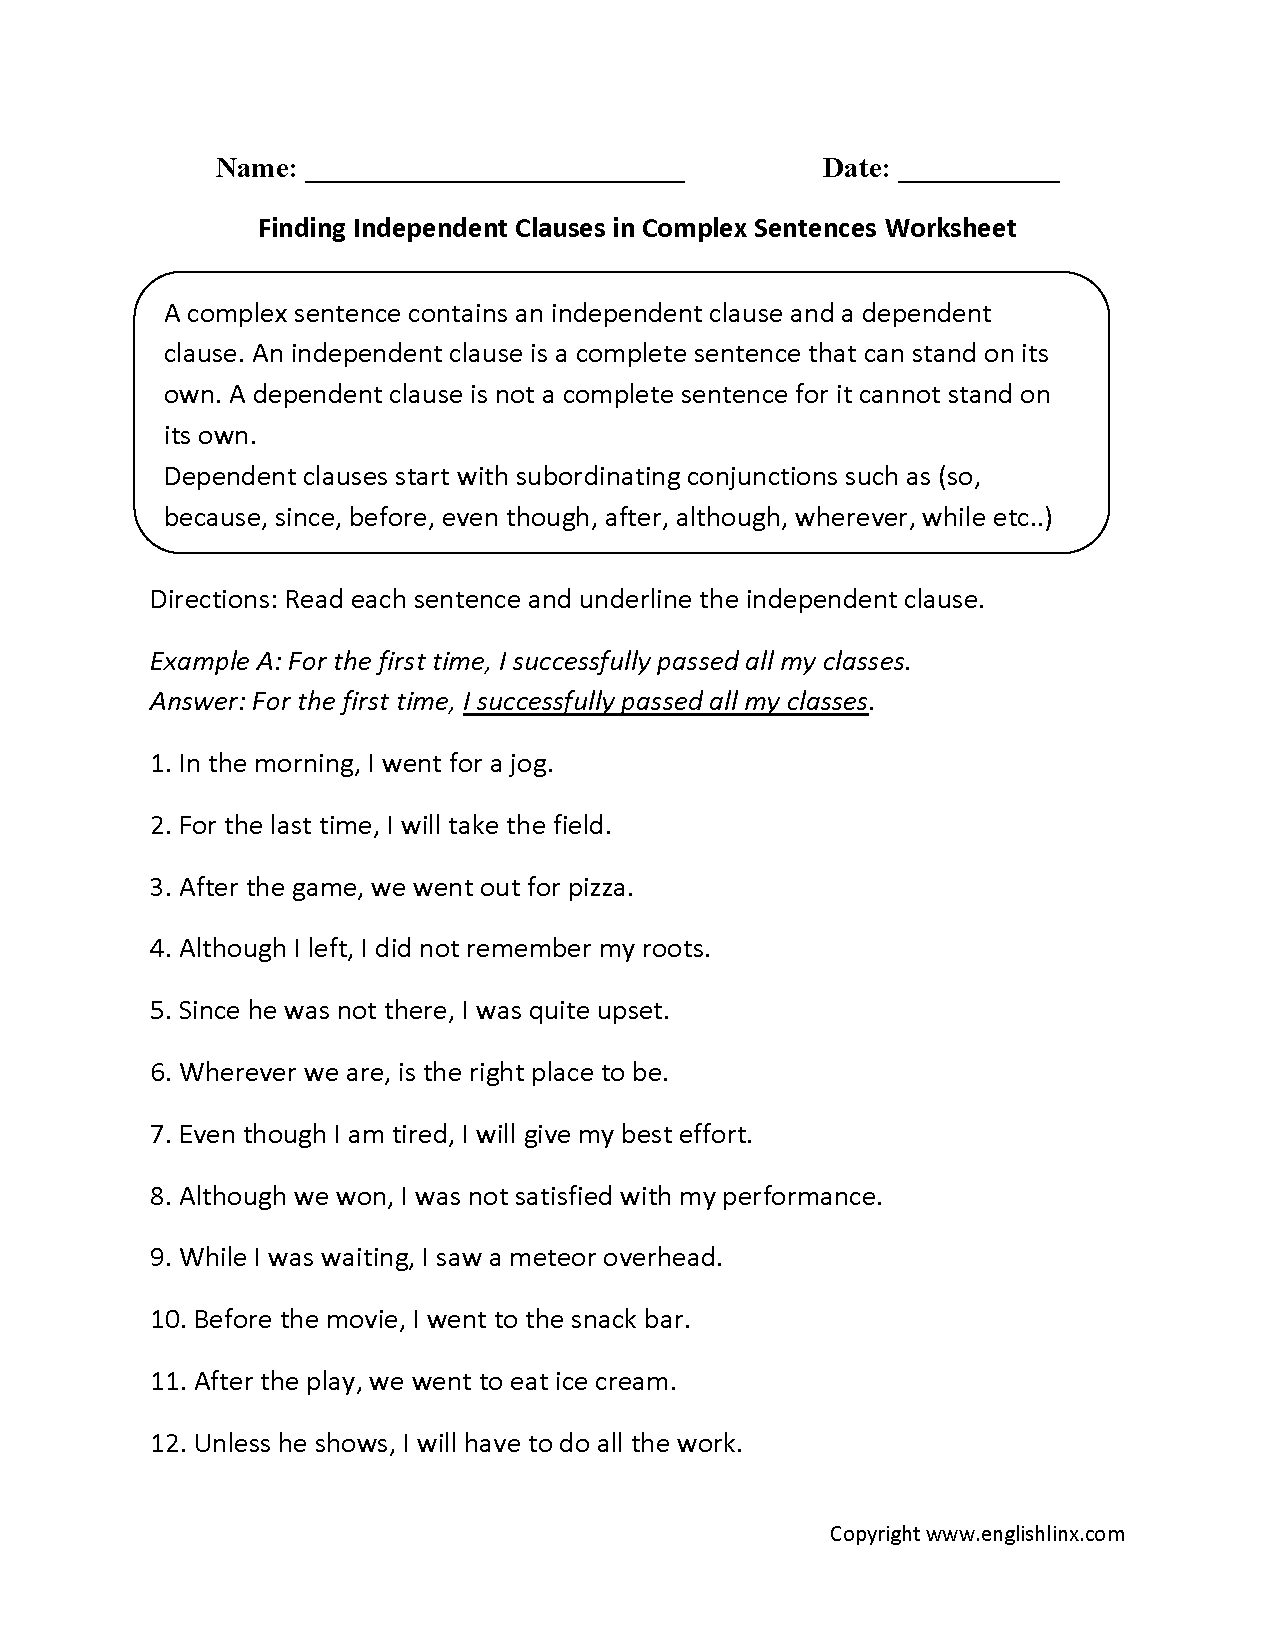 Complex Sentences Worksheets – Independent Clause Worksheet